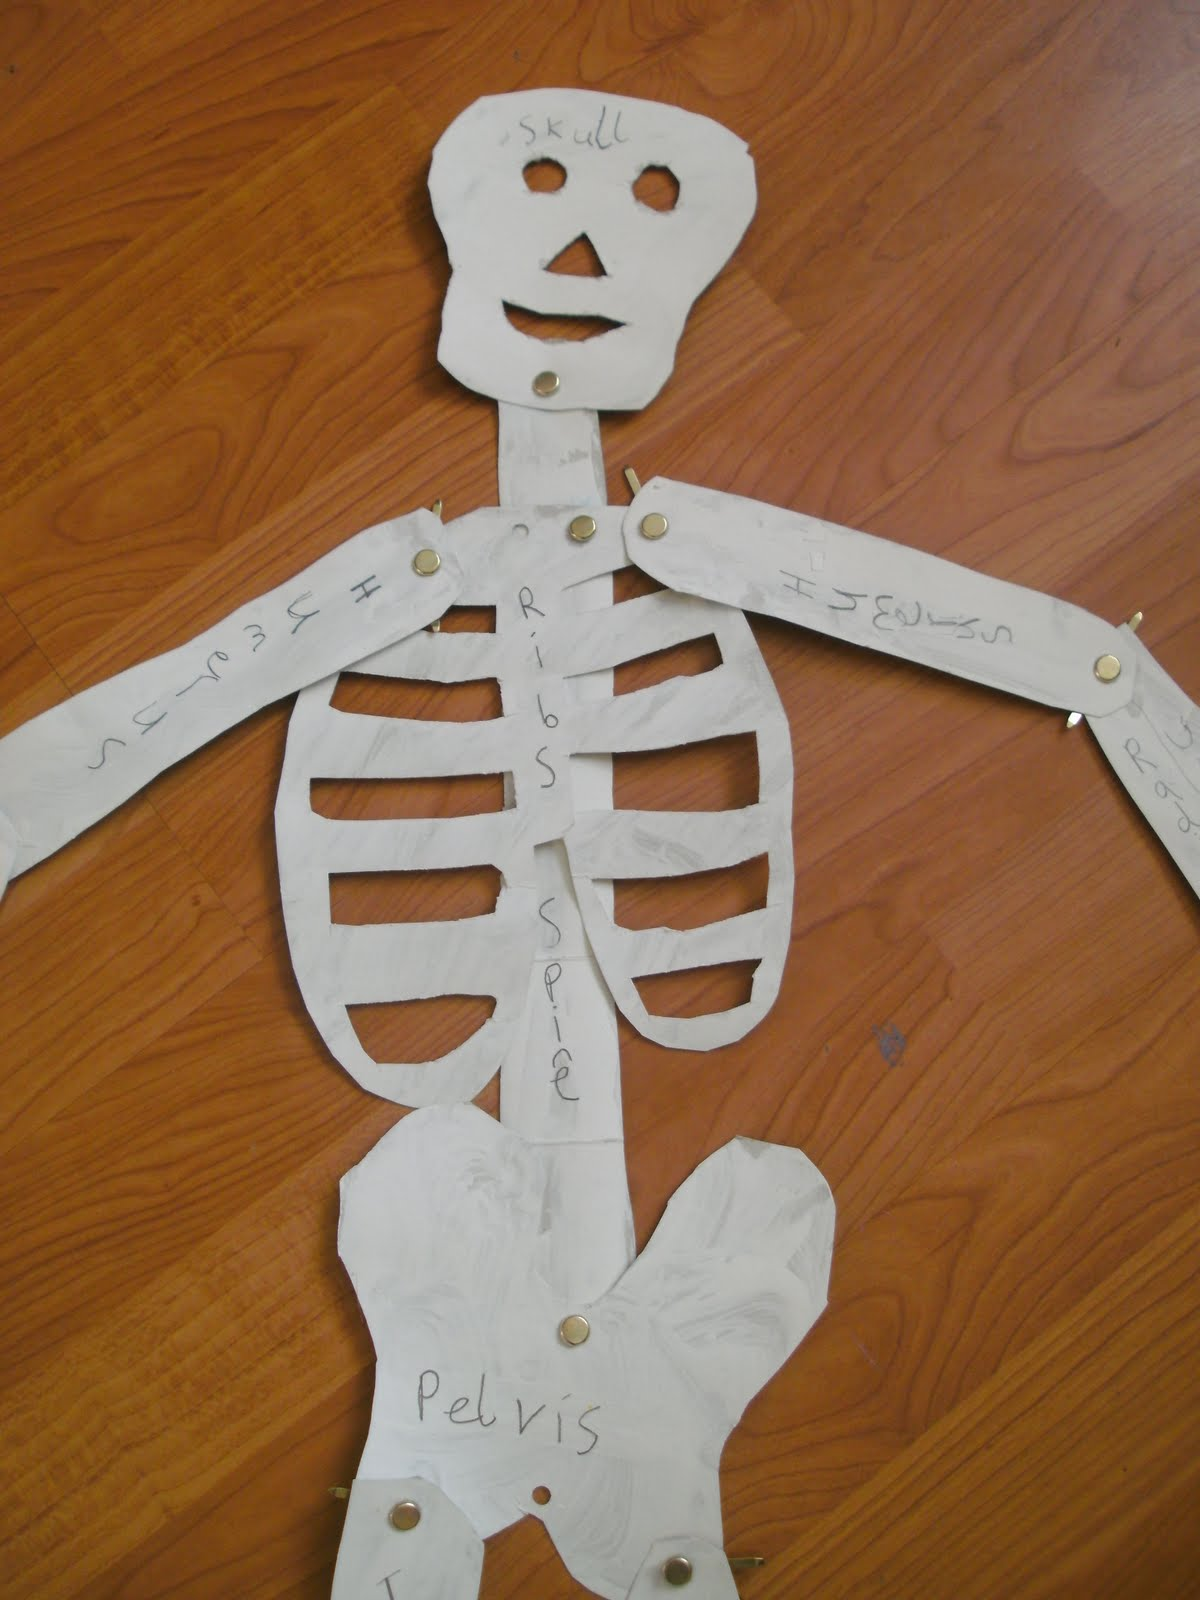 Home School Home Mr Skeleton